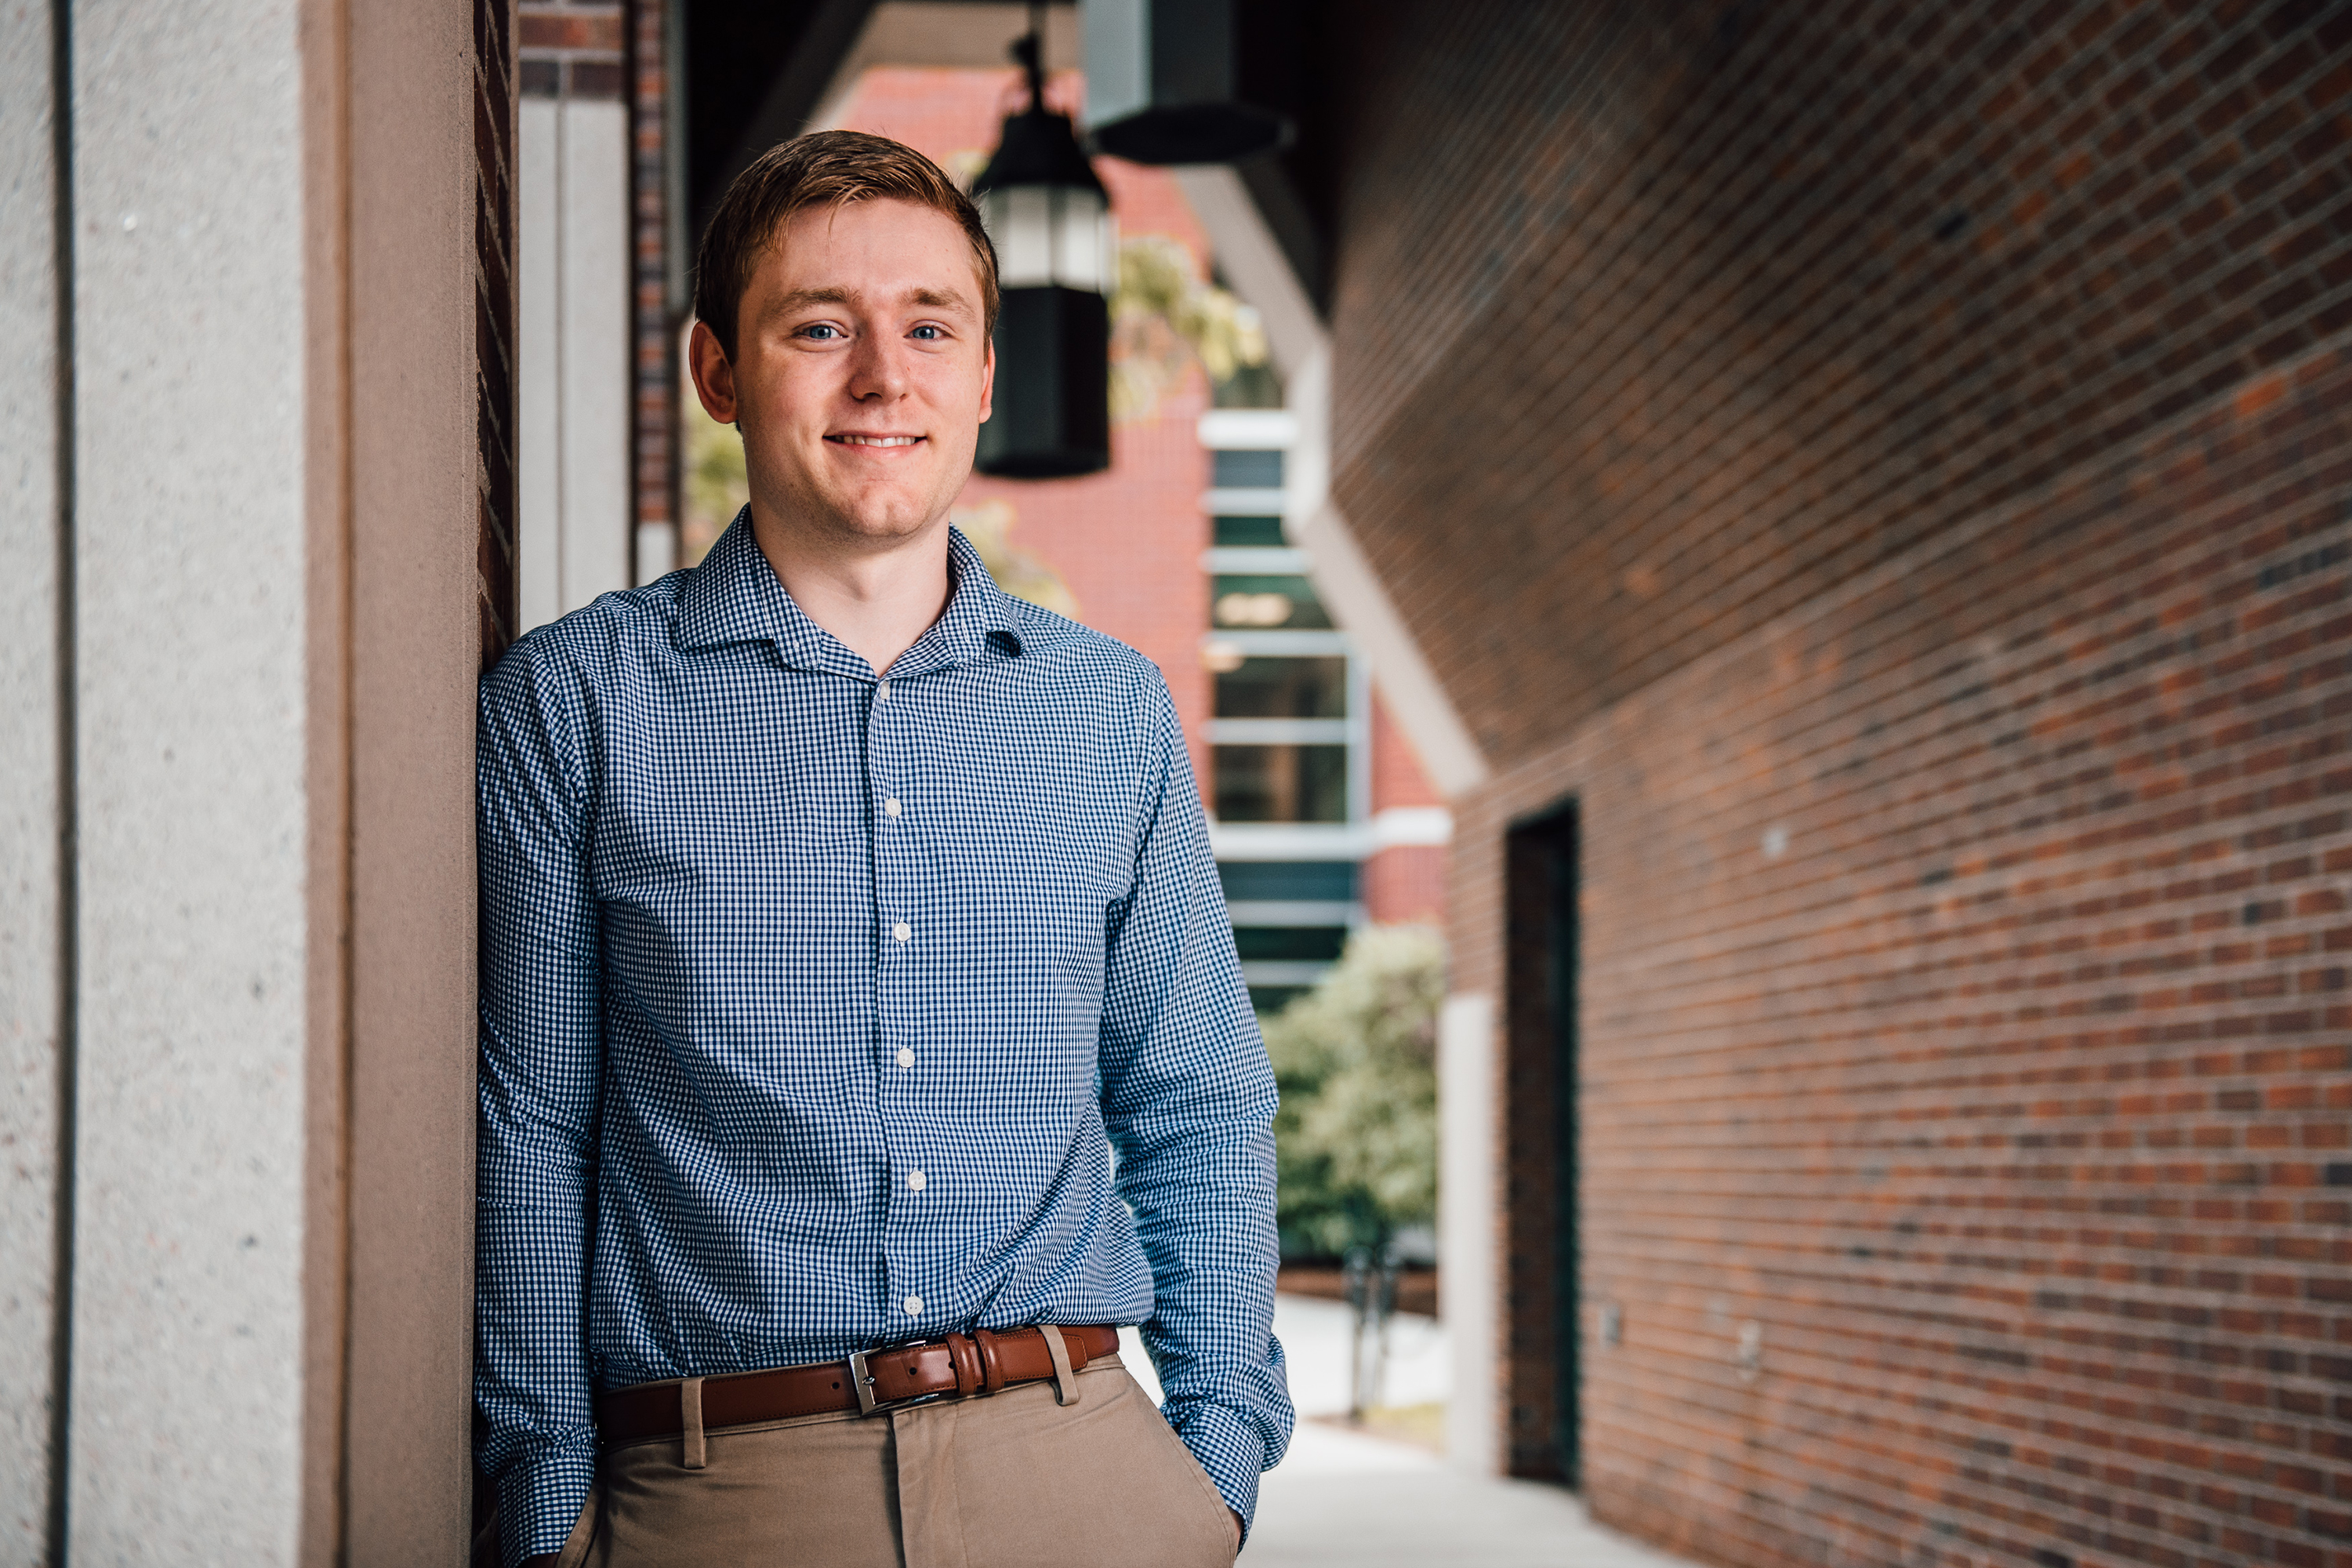 Matthew Bradford, who earned two degrees in accounting at UConn, earned one of the best CPA exam scores in the nation, and the top one in Connecticut, in 2017. (Nathan Oldham/UConn Photo)